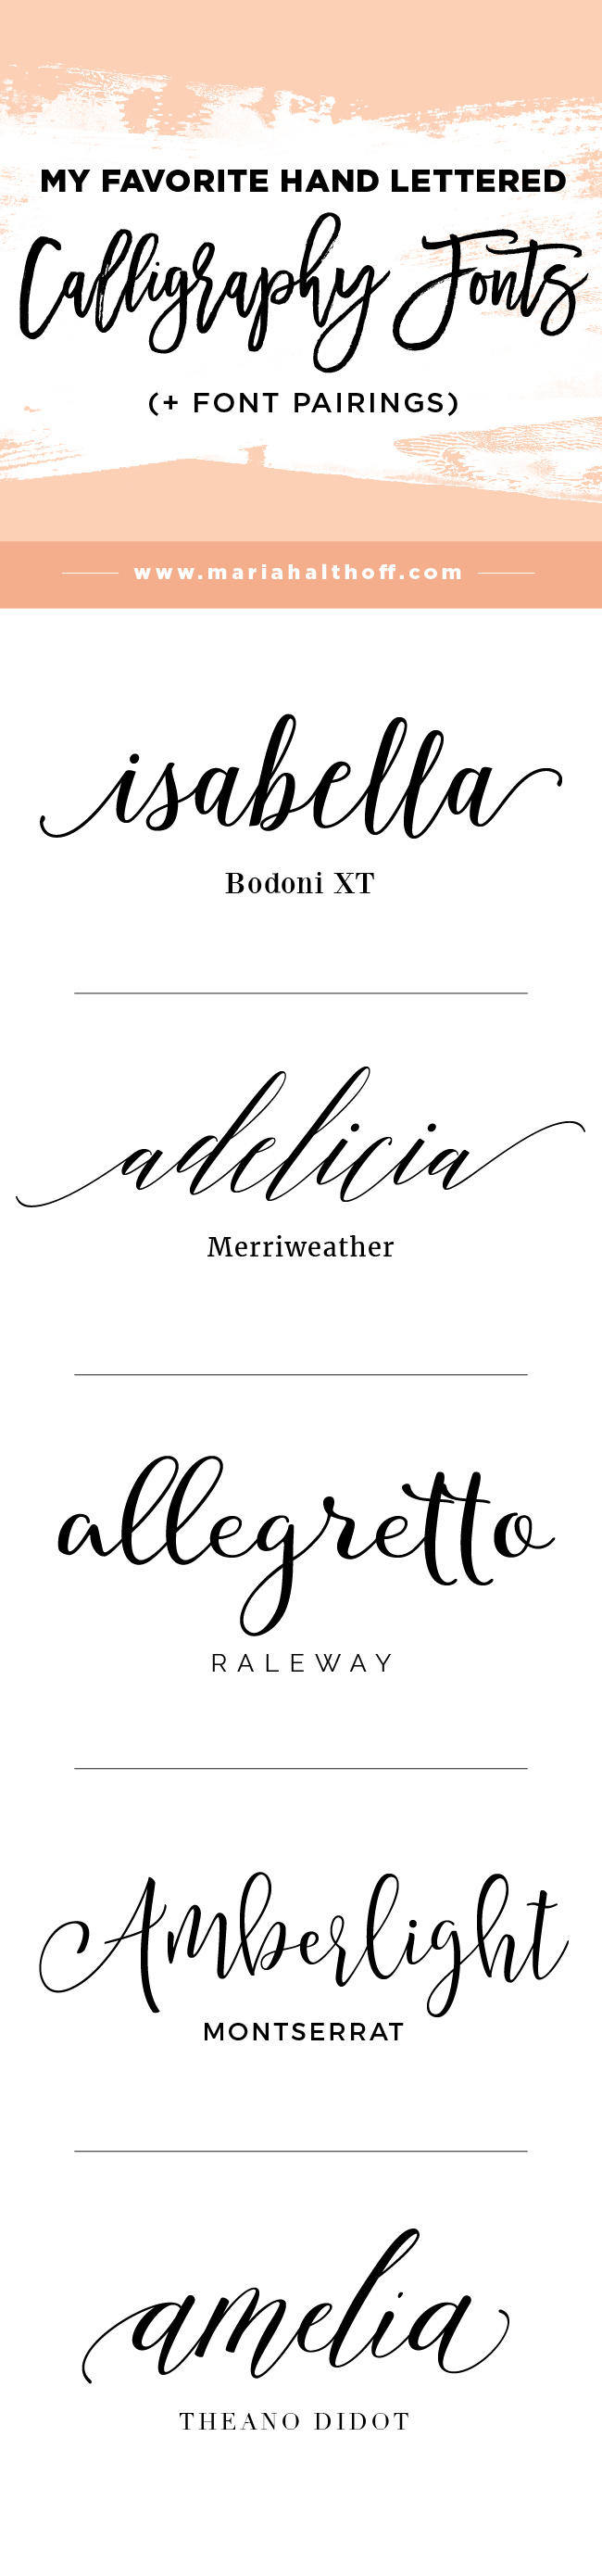 My Top 5 Favorite Hand Lettered Calligraphy Fonts Font Pairings